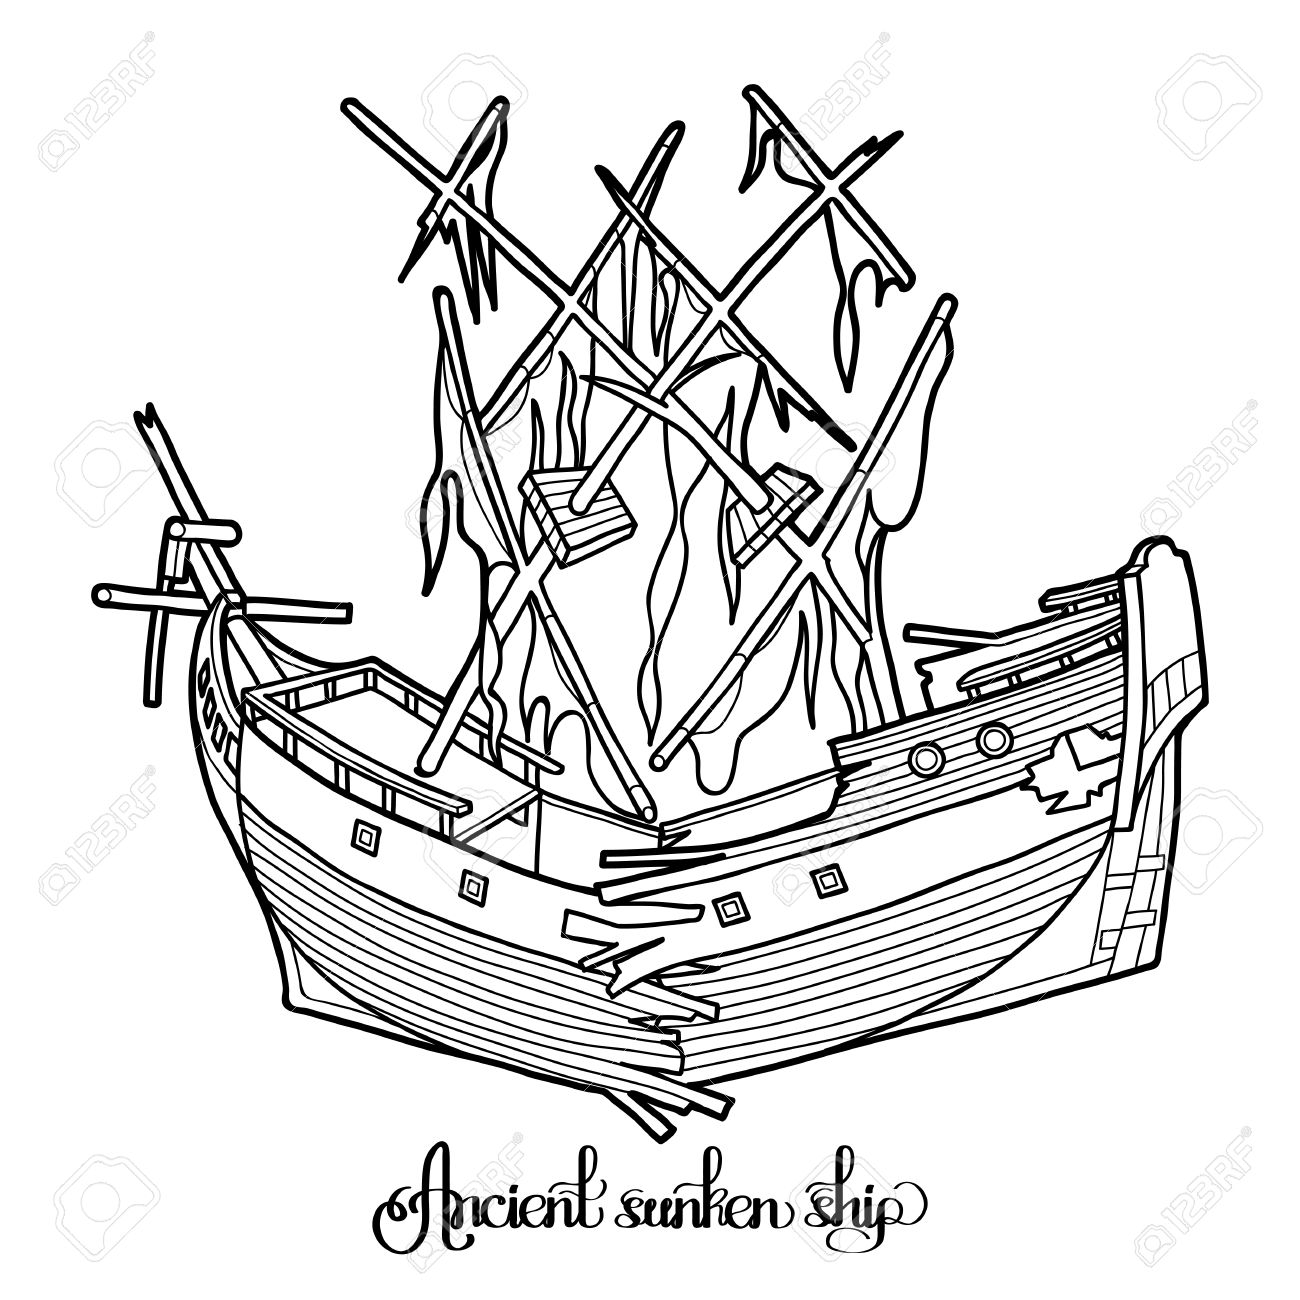 pirate shipwreck ancient sunken ship graphic vector illustration isolated on white background coloring